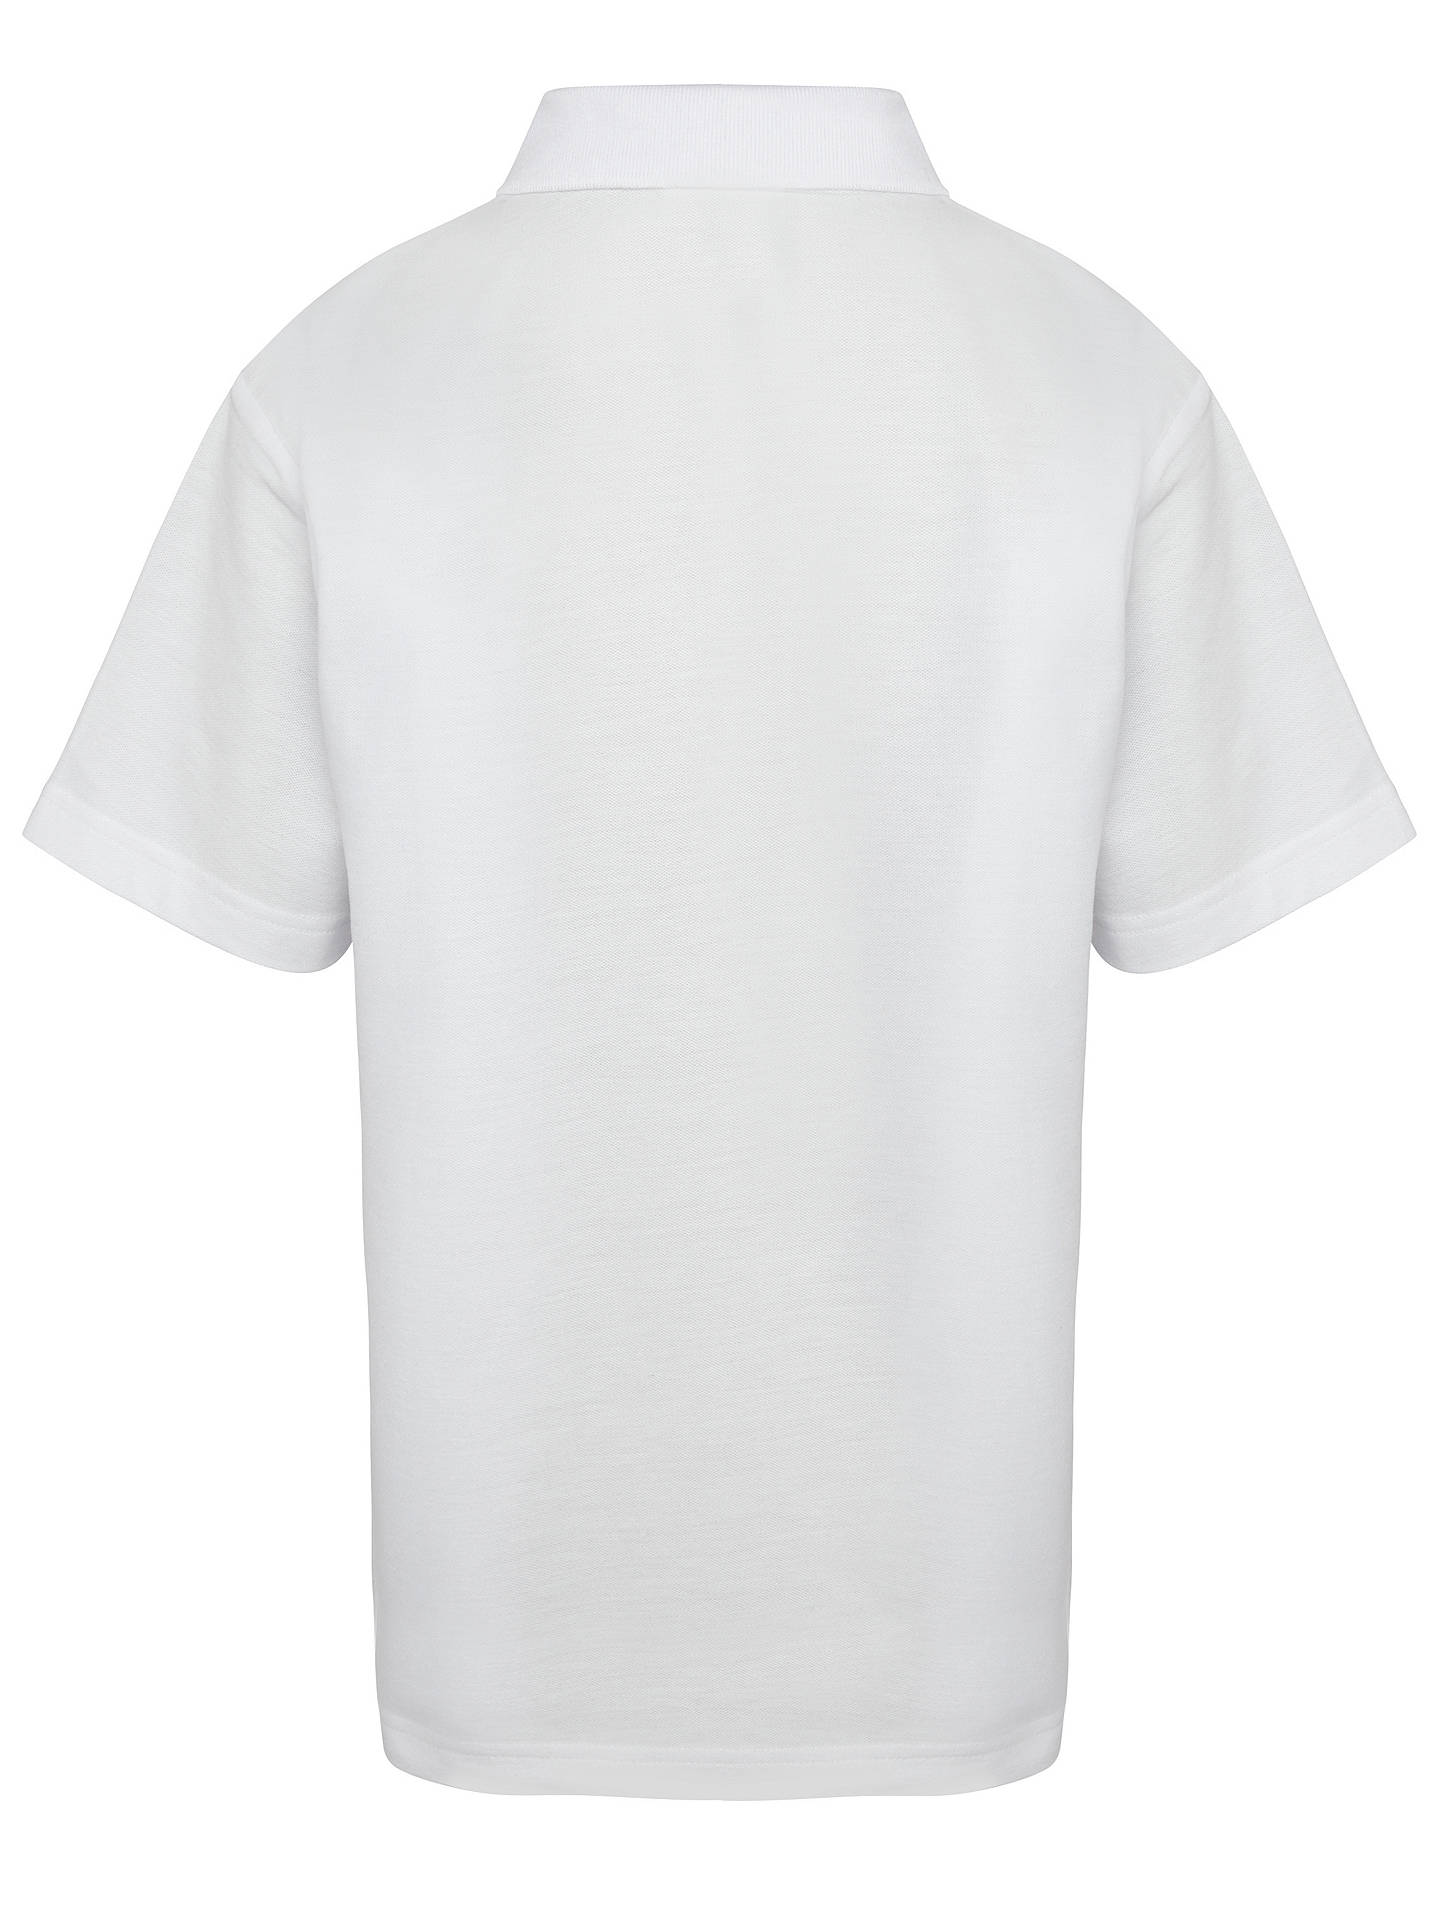 Buy Ashfold School Polo Shirt, White, 2-3 years Online at johnlewis.com